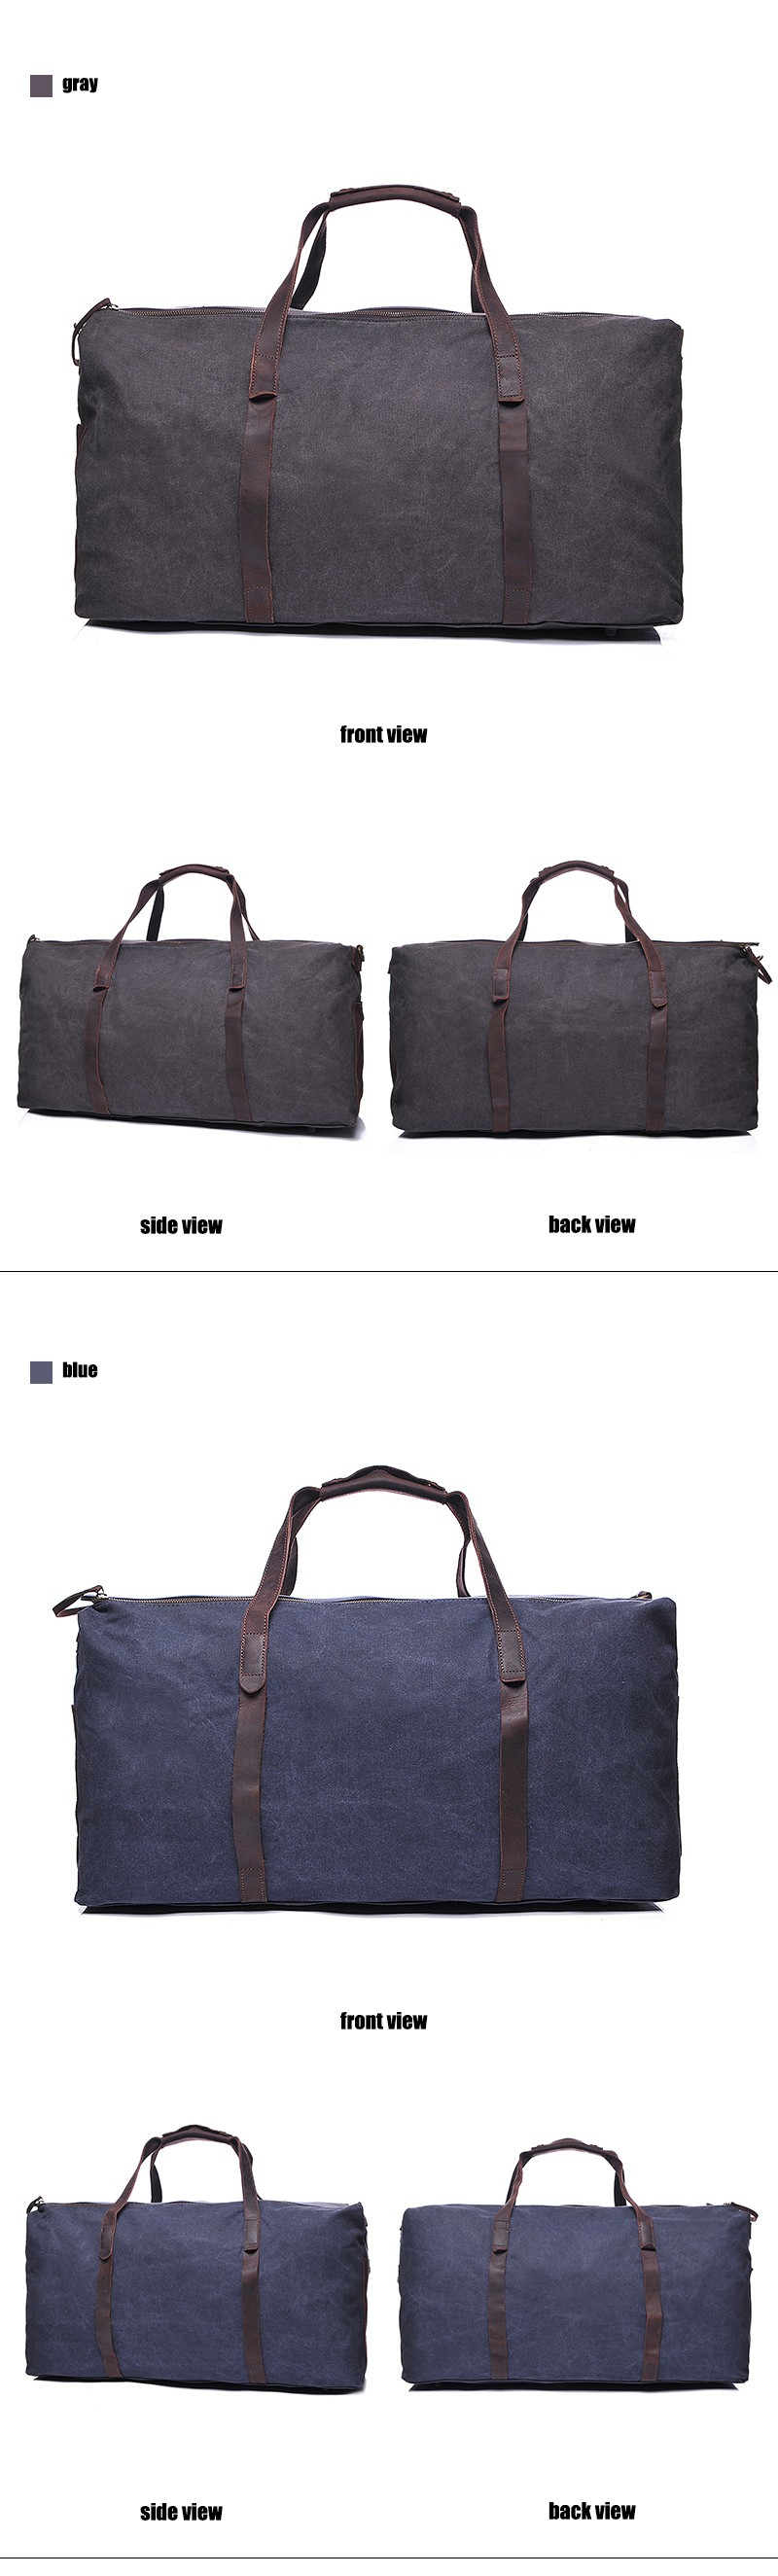 YD-2179 Active Leisure Travel Bag Water Resistant Overnight Holdall big Travel Bag Vintage Weekend Mens Sport Canvas Duffle Bags